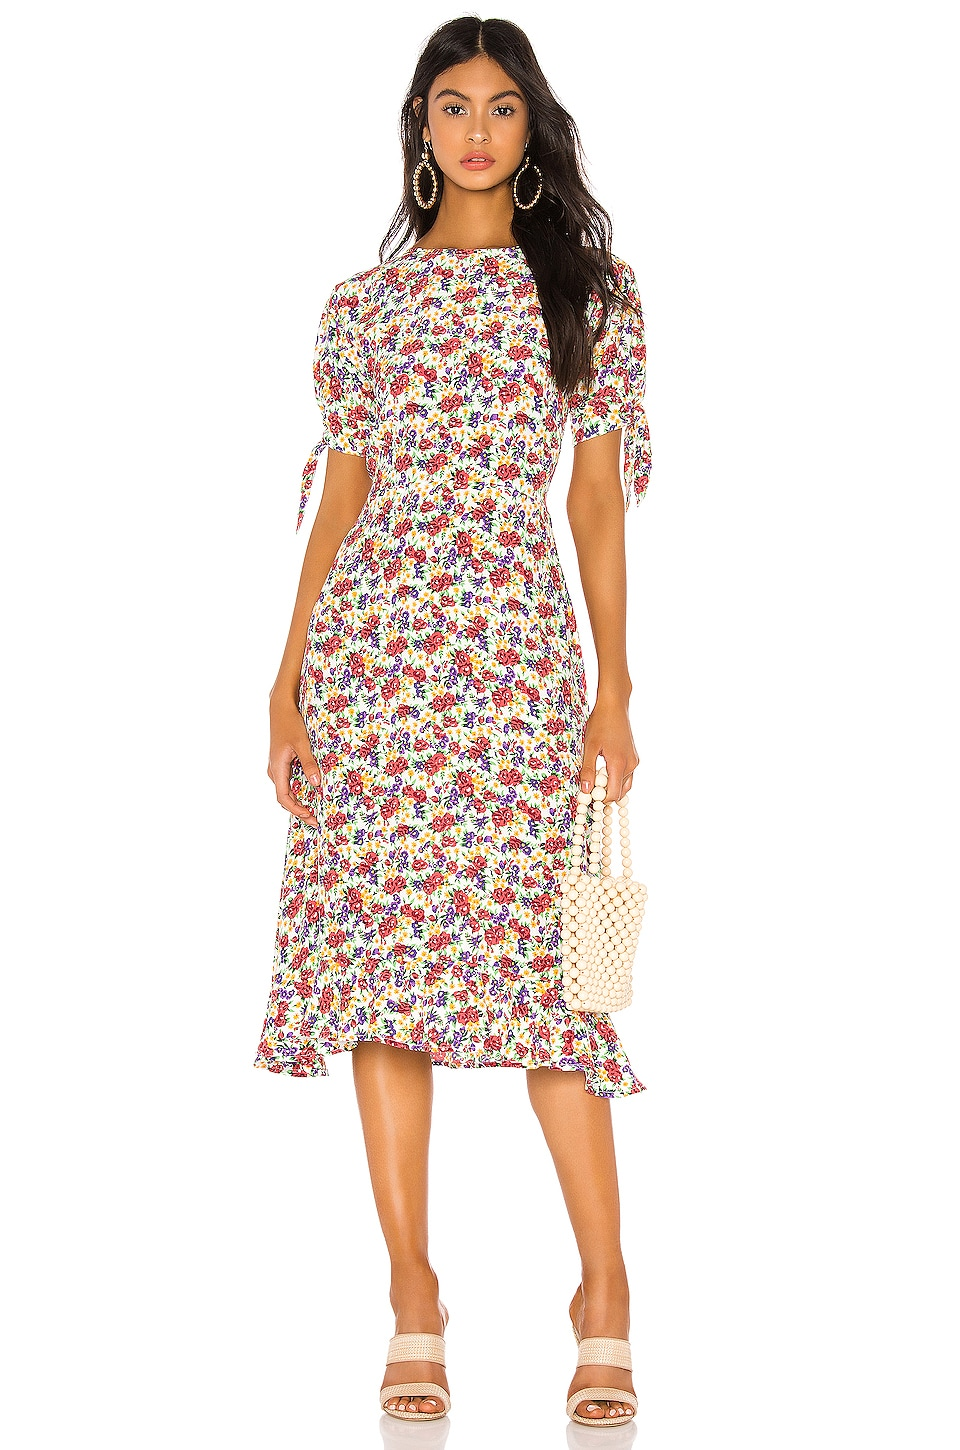 FAITHFULL THE BRAND Emilia Dress in Lumina Floral